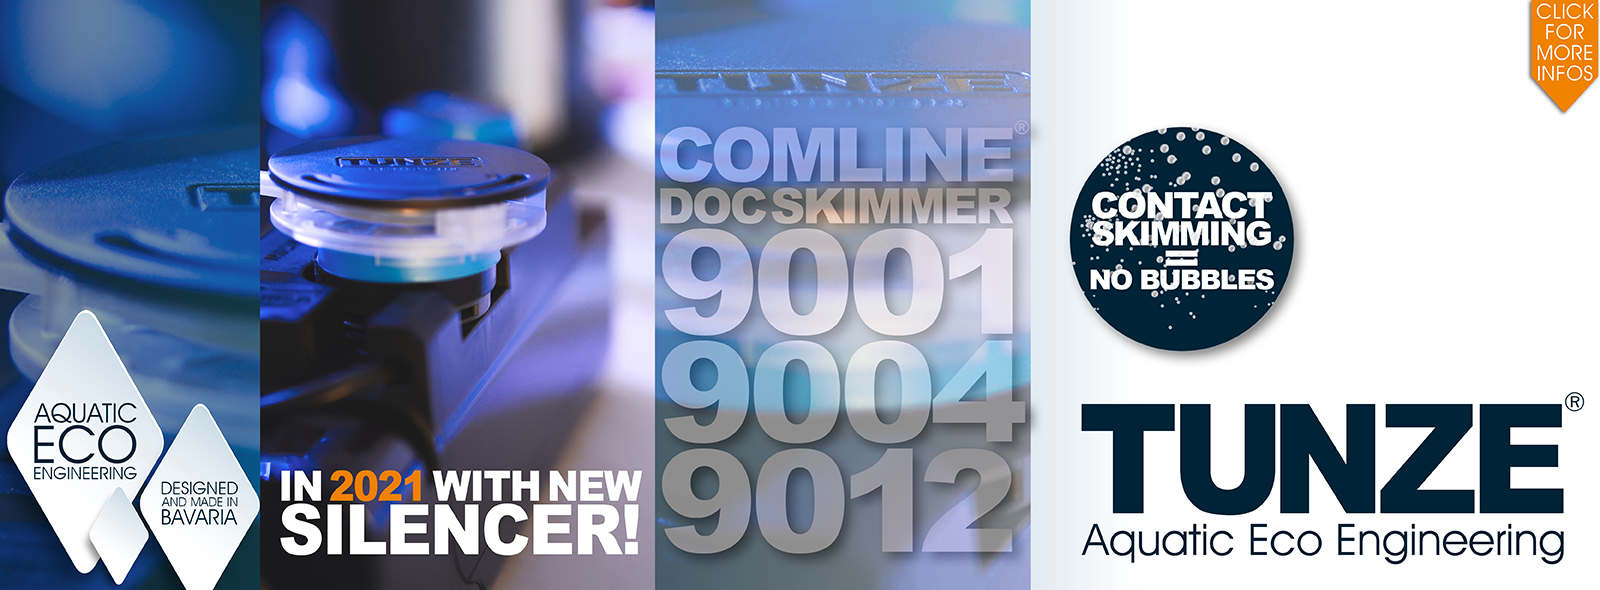 Comline® DOC Skimmer New Silencer